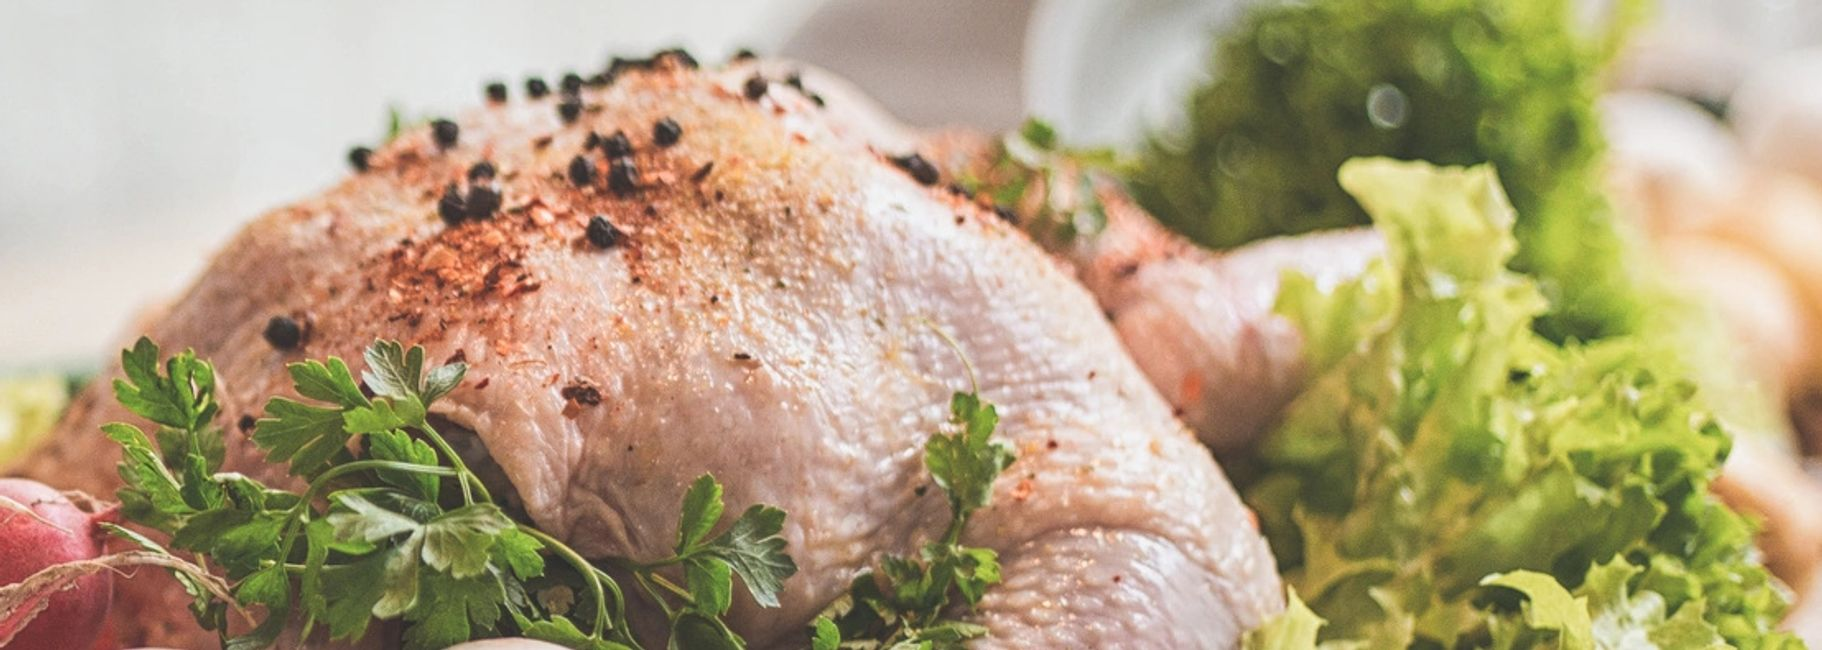 Roast Turkey with Cider Gravy